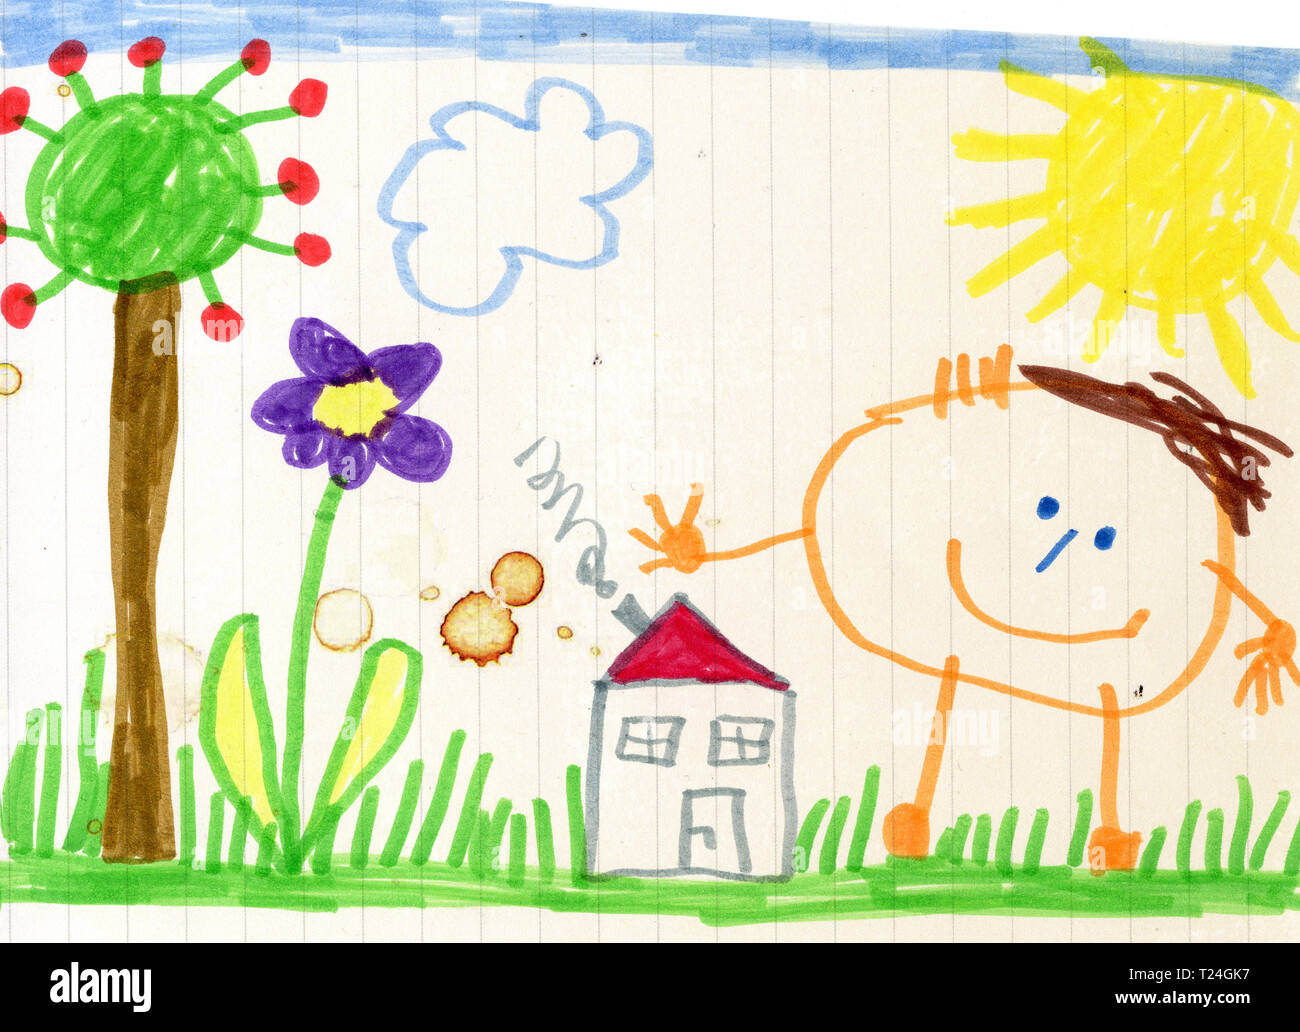 Childs Drawing House Garden Stock Photos Childs Drawing House